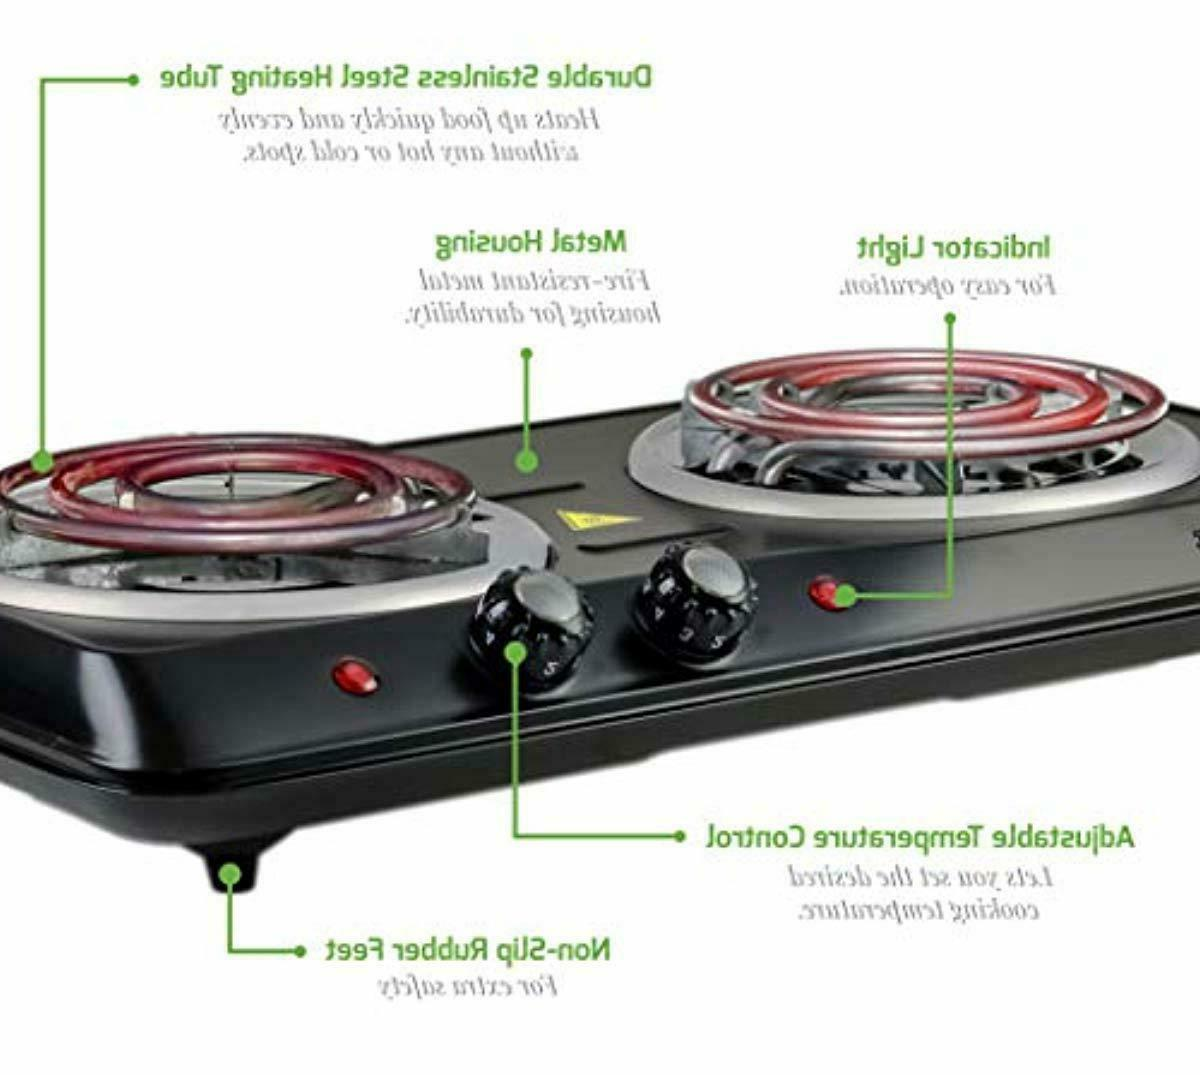 Electric Cooktop Double Hot Plate Cooking New